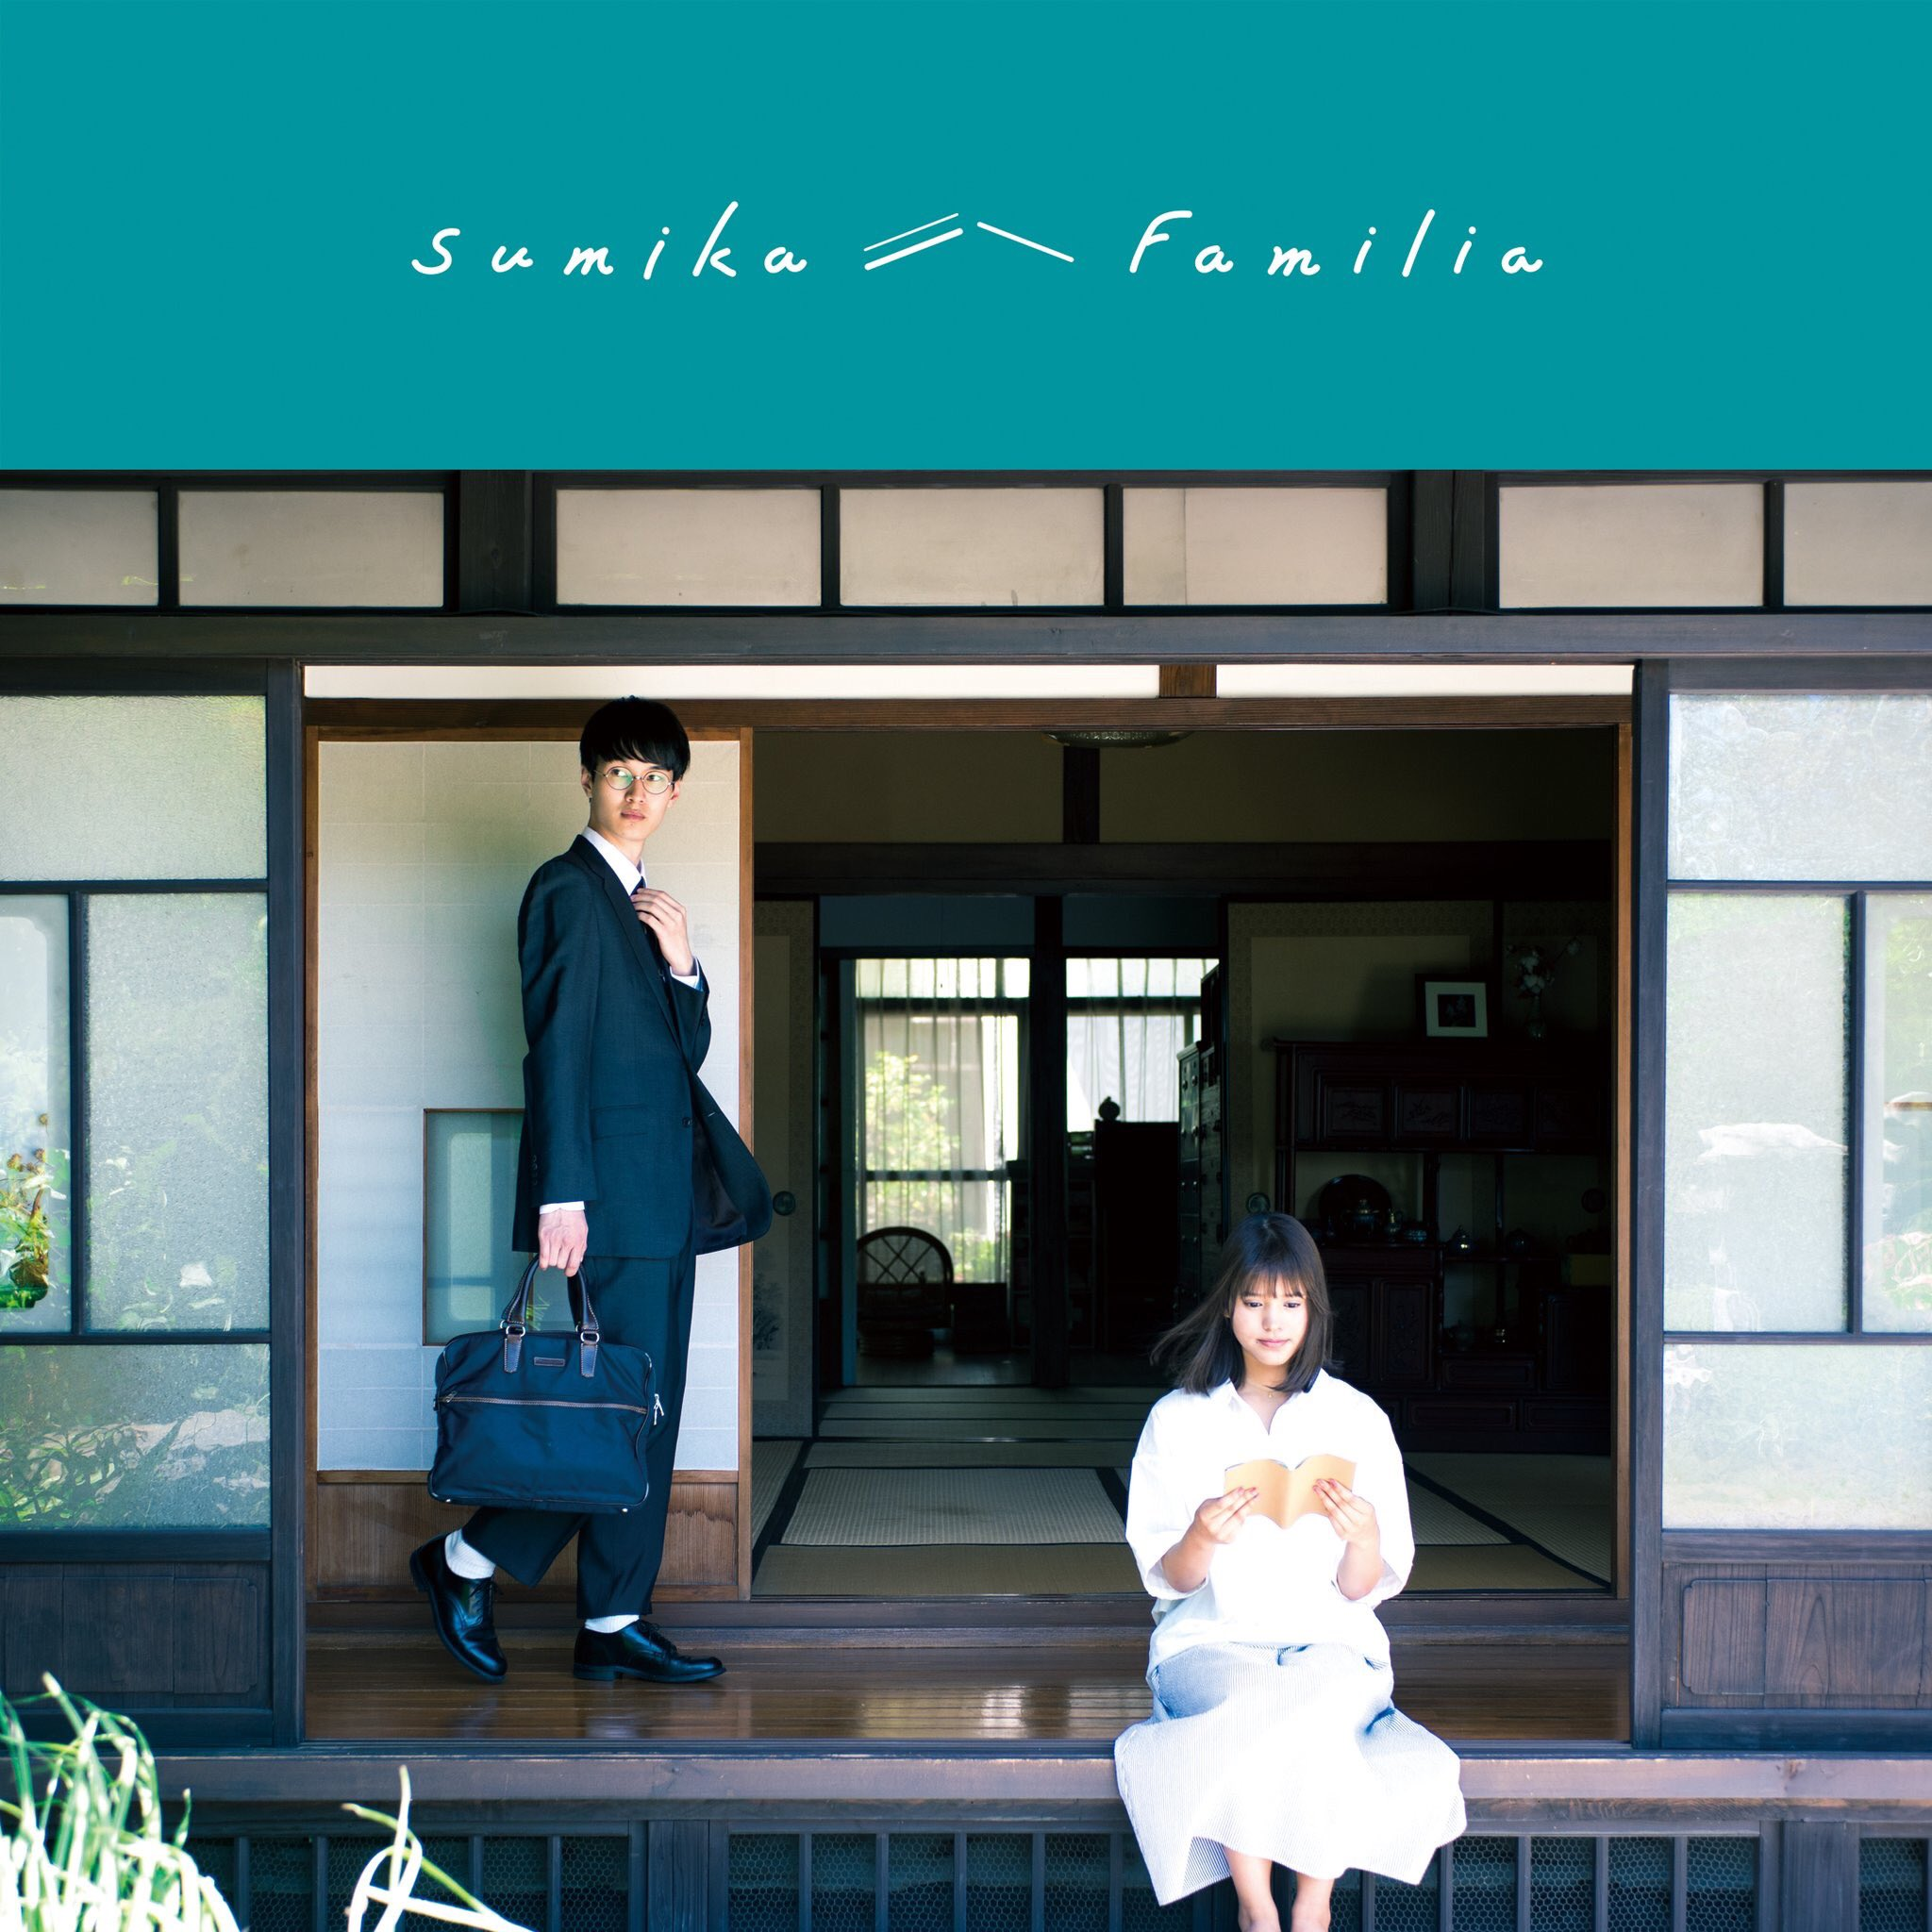 20170803.0245.08 sumika - Familia (Regular edition) (M4A) cover.jpg